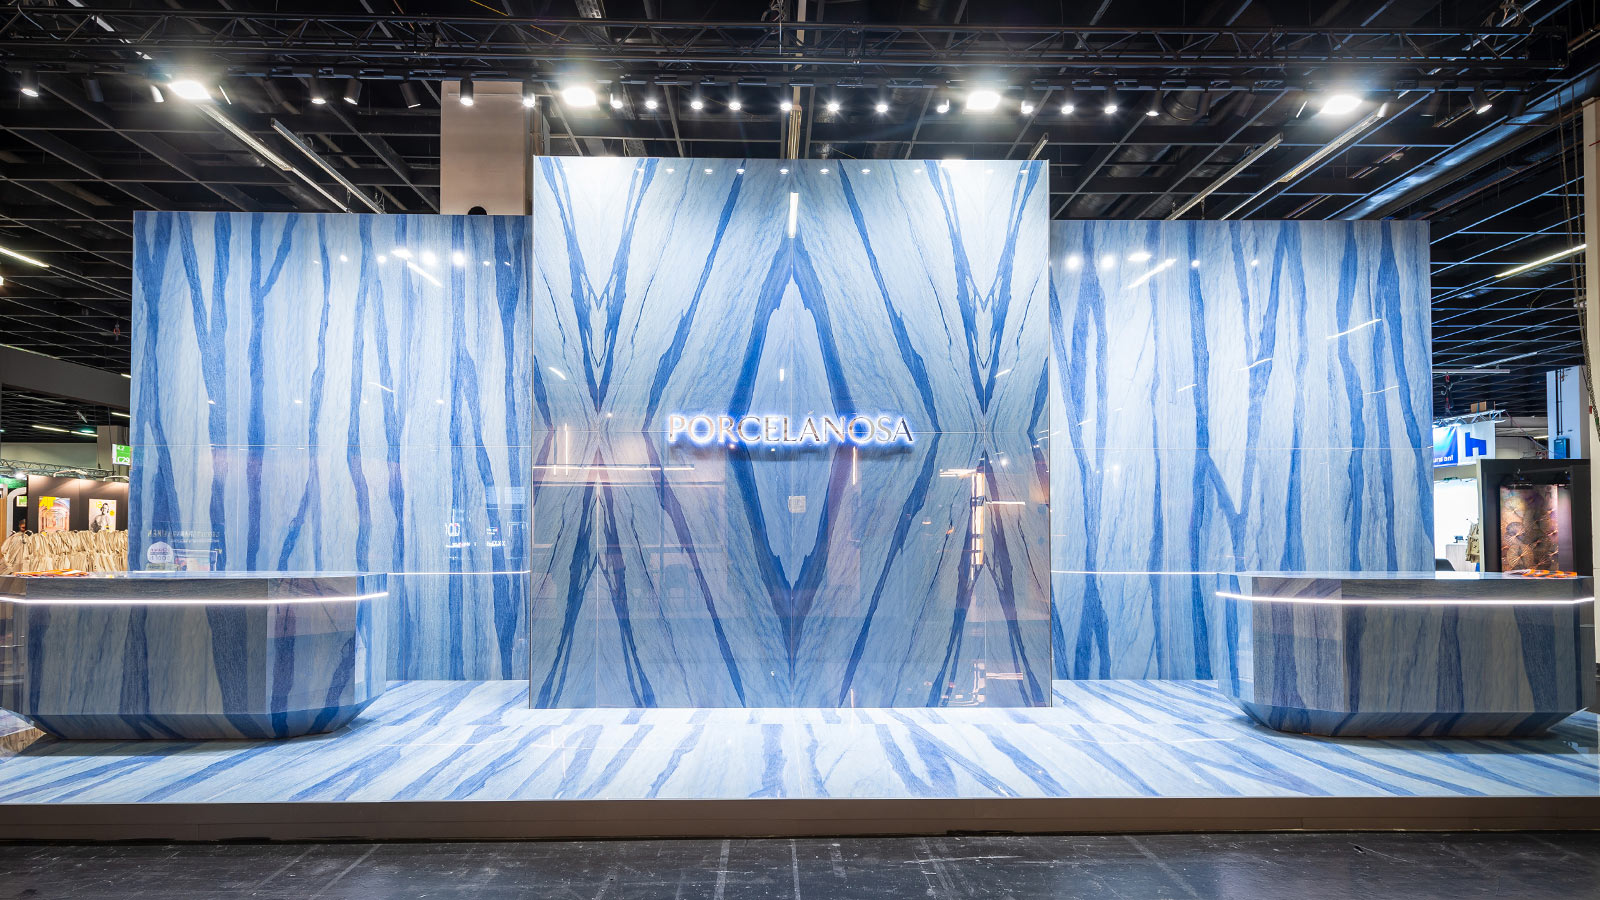 PORCELANOSA Grupo stands out at the IMM Cologne fair